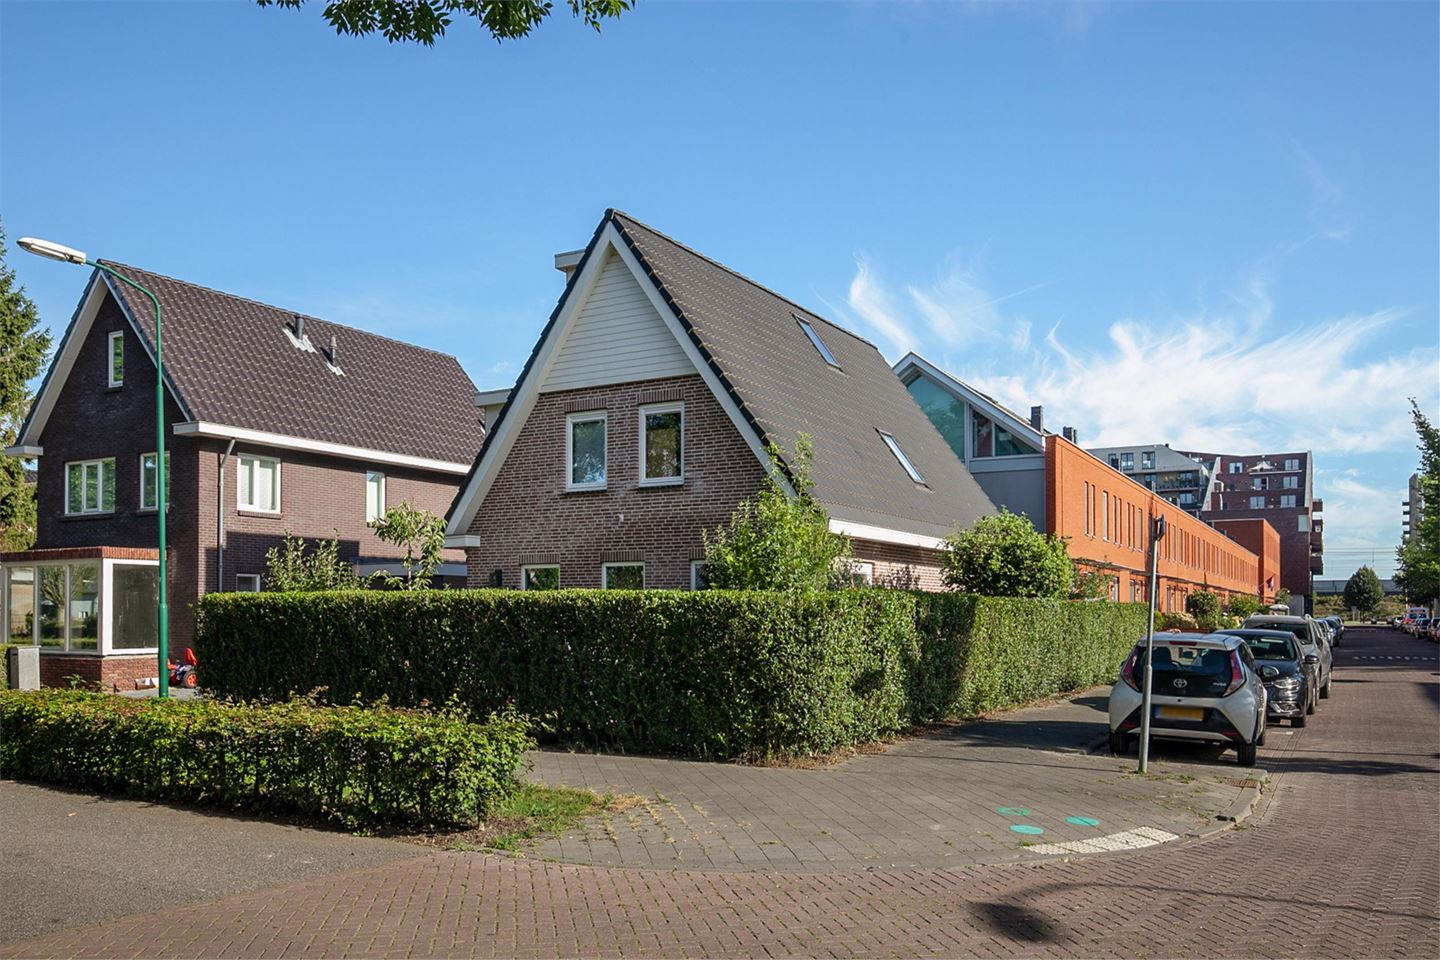 View photo 3 of Utrechtseweg 20 a